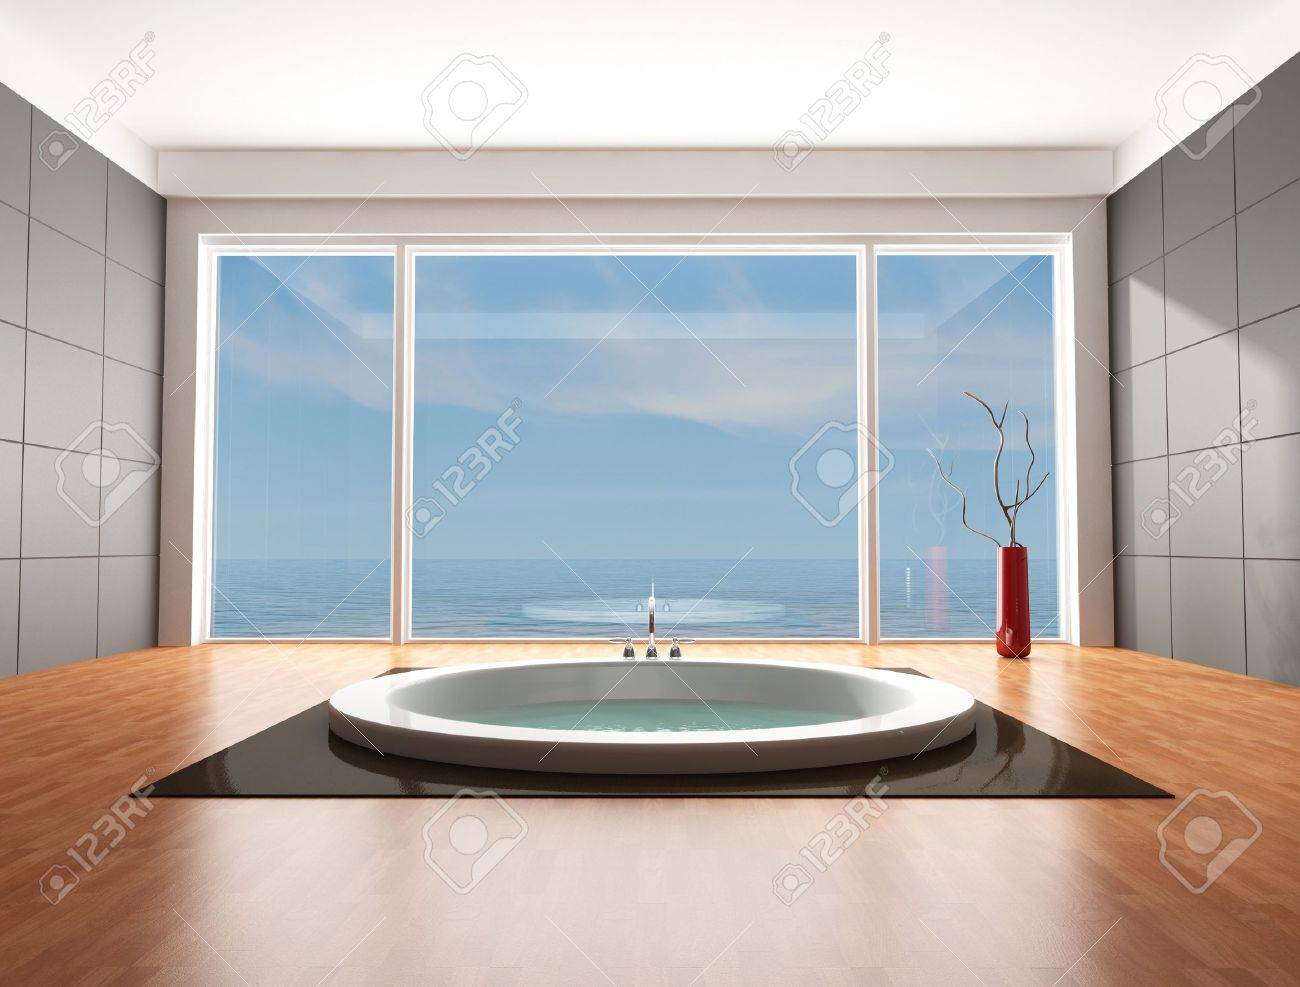 minimalist bathroom with big circular bathtub - rendering - the omage on background is a my rendering composition Stock Photo - 6104182